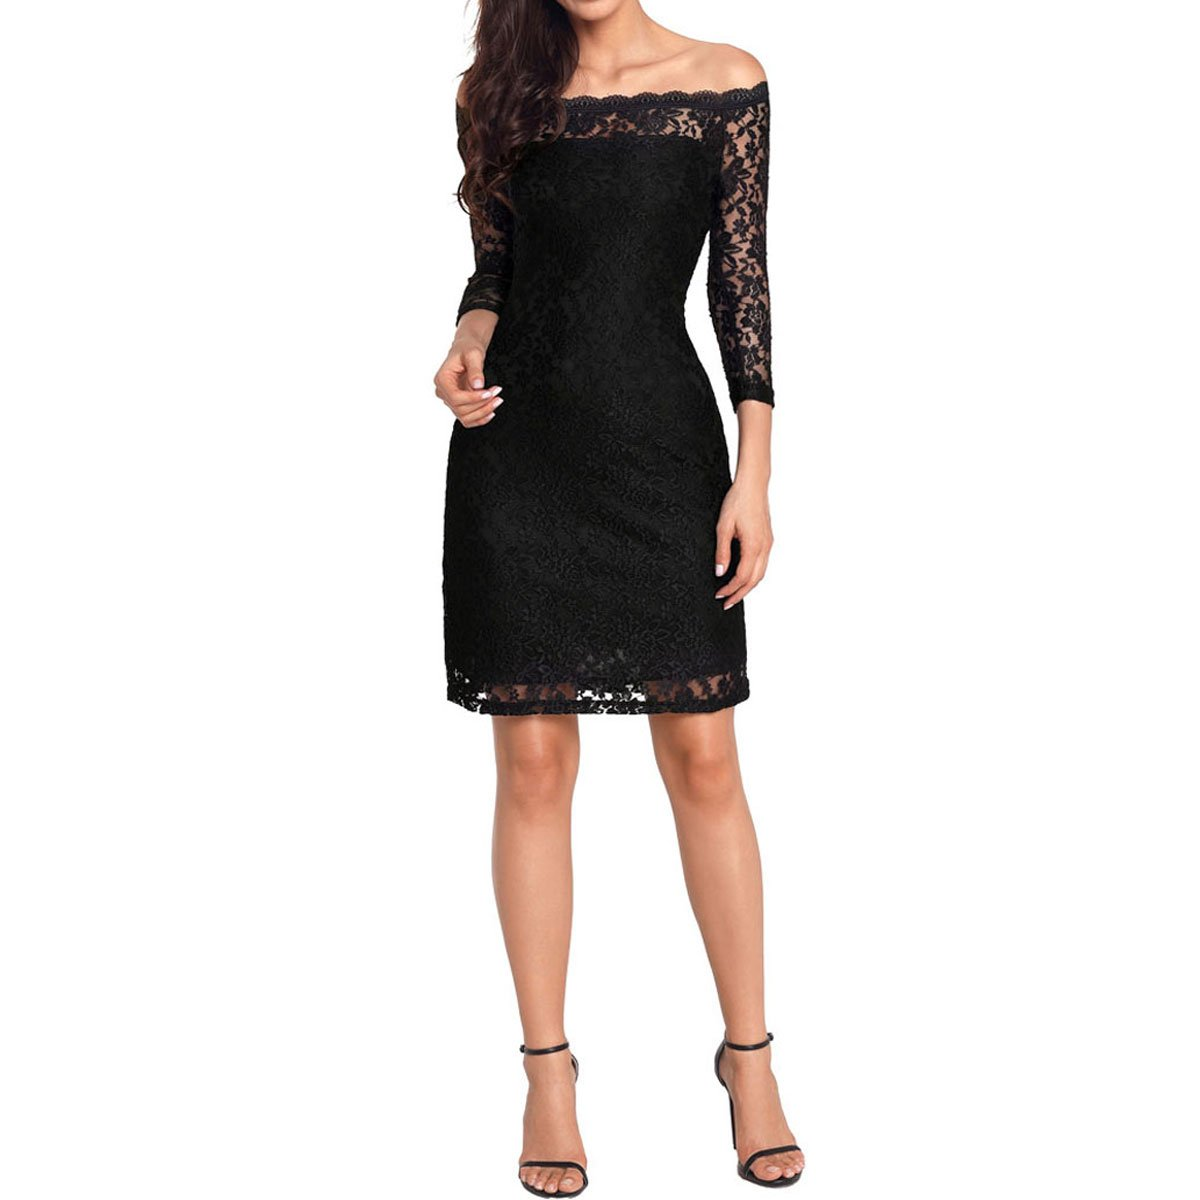 c485d5b26ae Orangetime Sexy Lace Dress For Women Black Summer Dress Vintage 1920 s  Cocktail Dress Off Shoulder Party Dresses For Wedding US 16 at Amazon  Women s ...